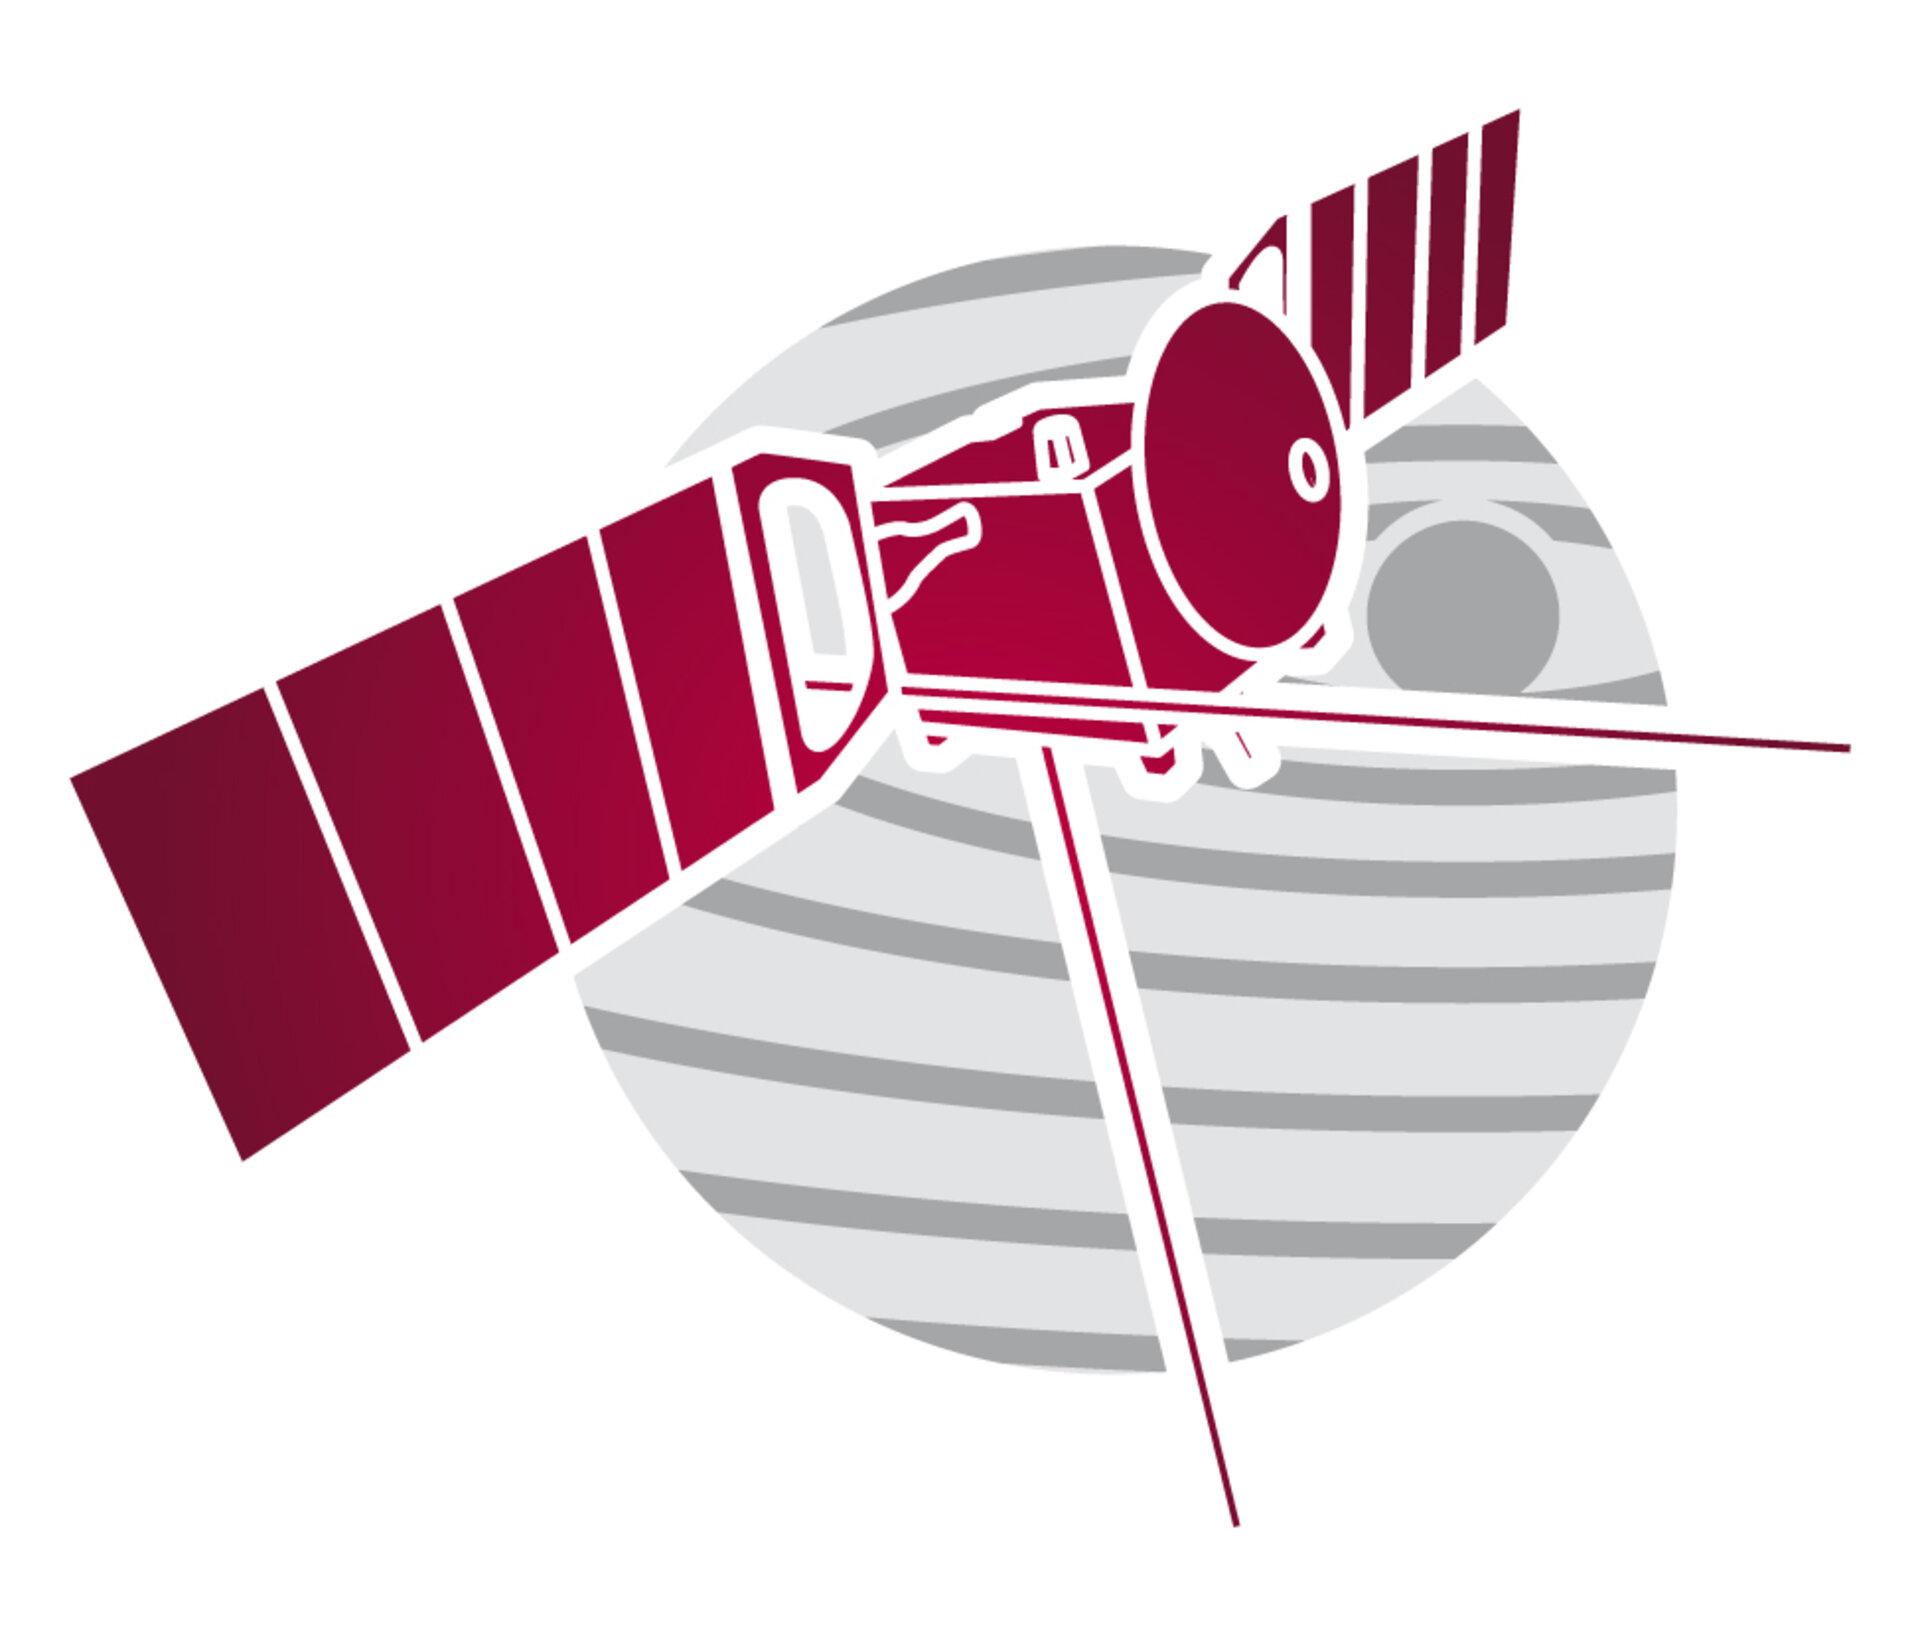 Mars Express mission logo